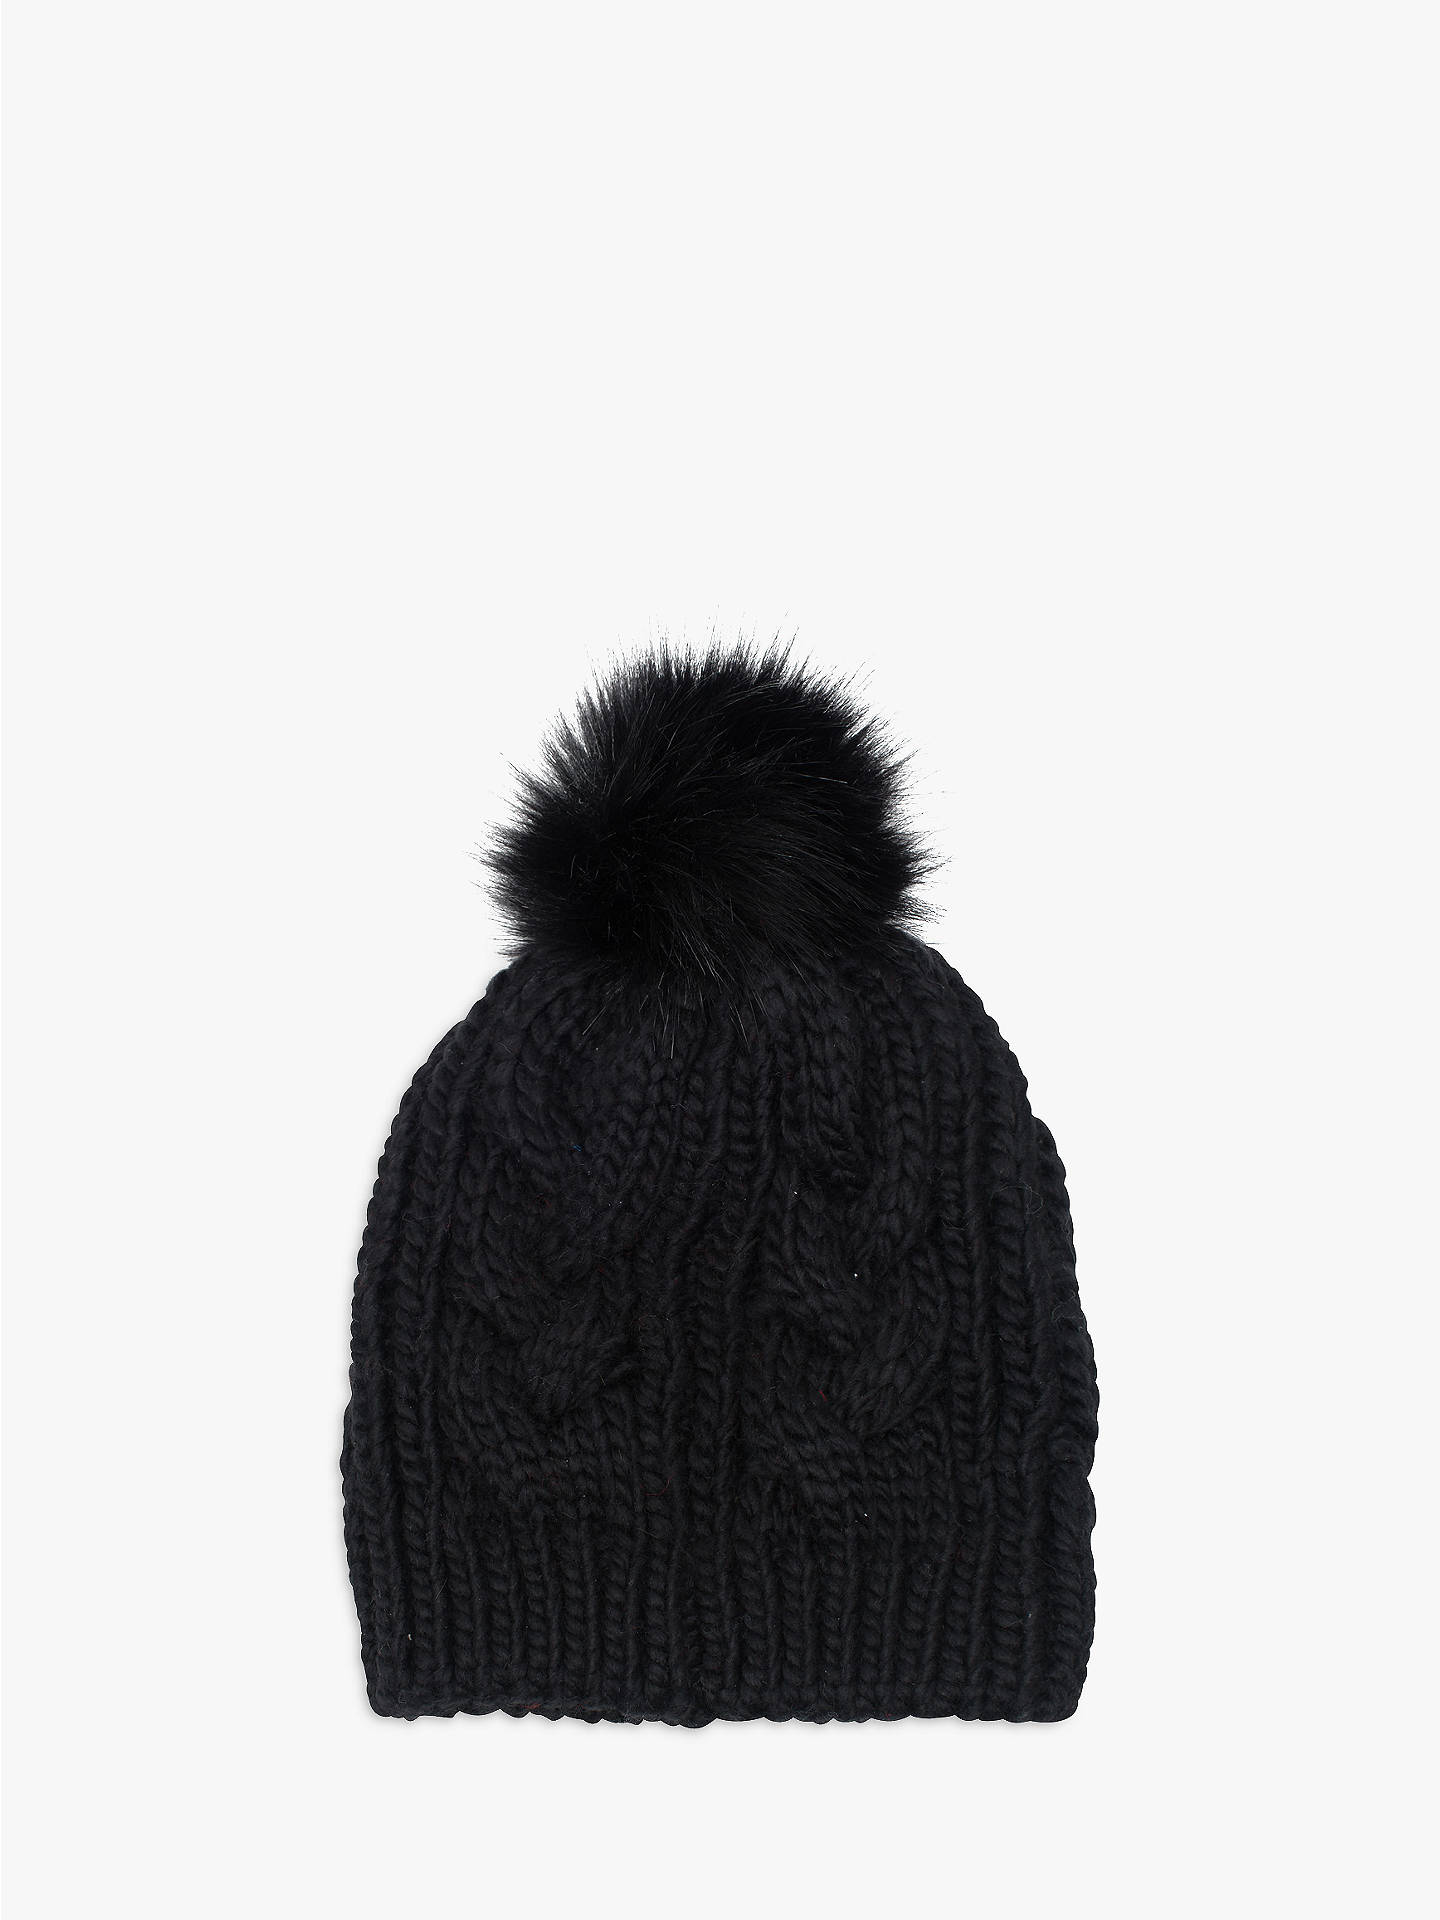 BuyFrench Connection Cable Knit Faux Fur Pom Pom Beanie Hat 4e5e6eb68da